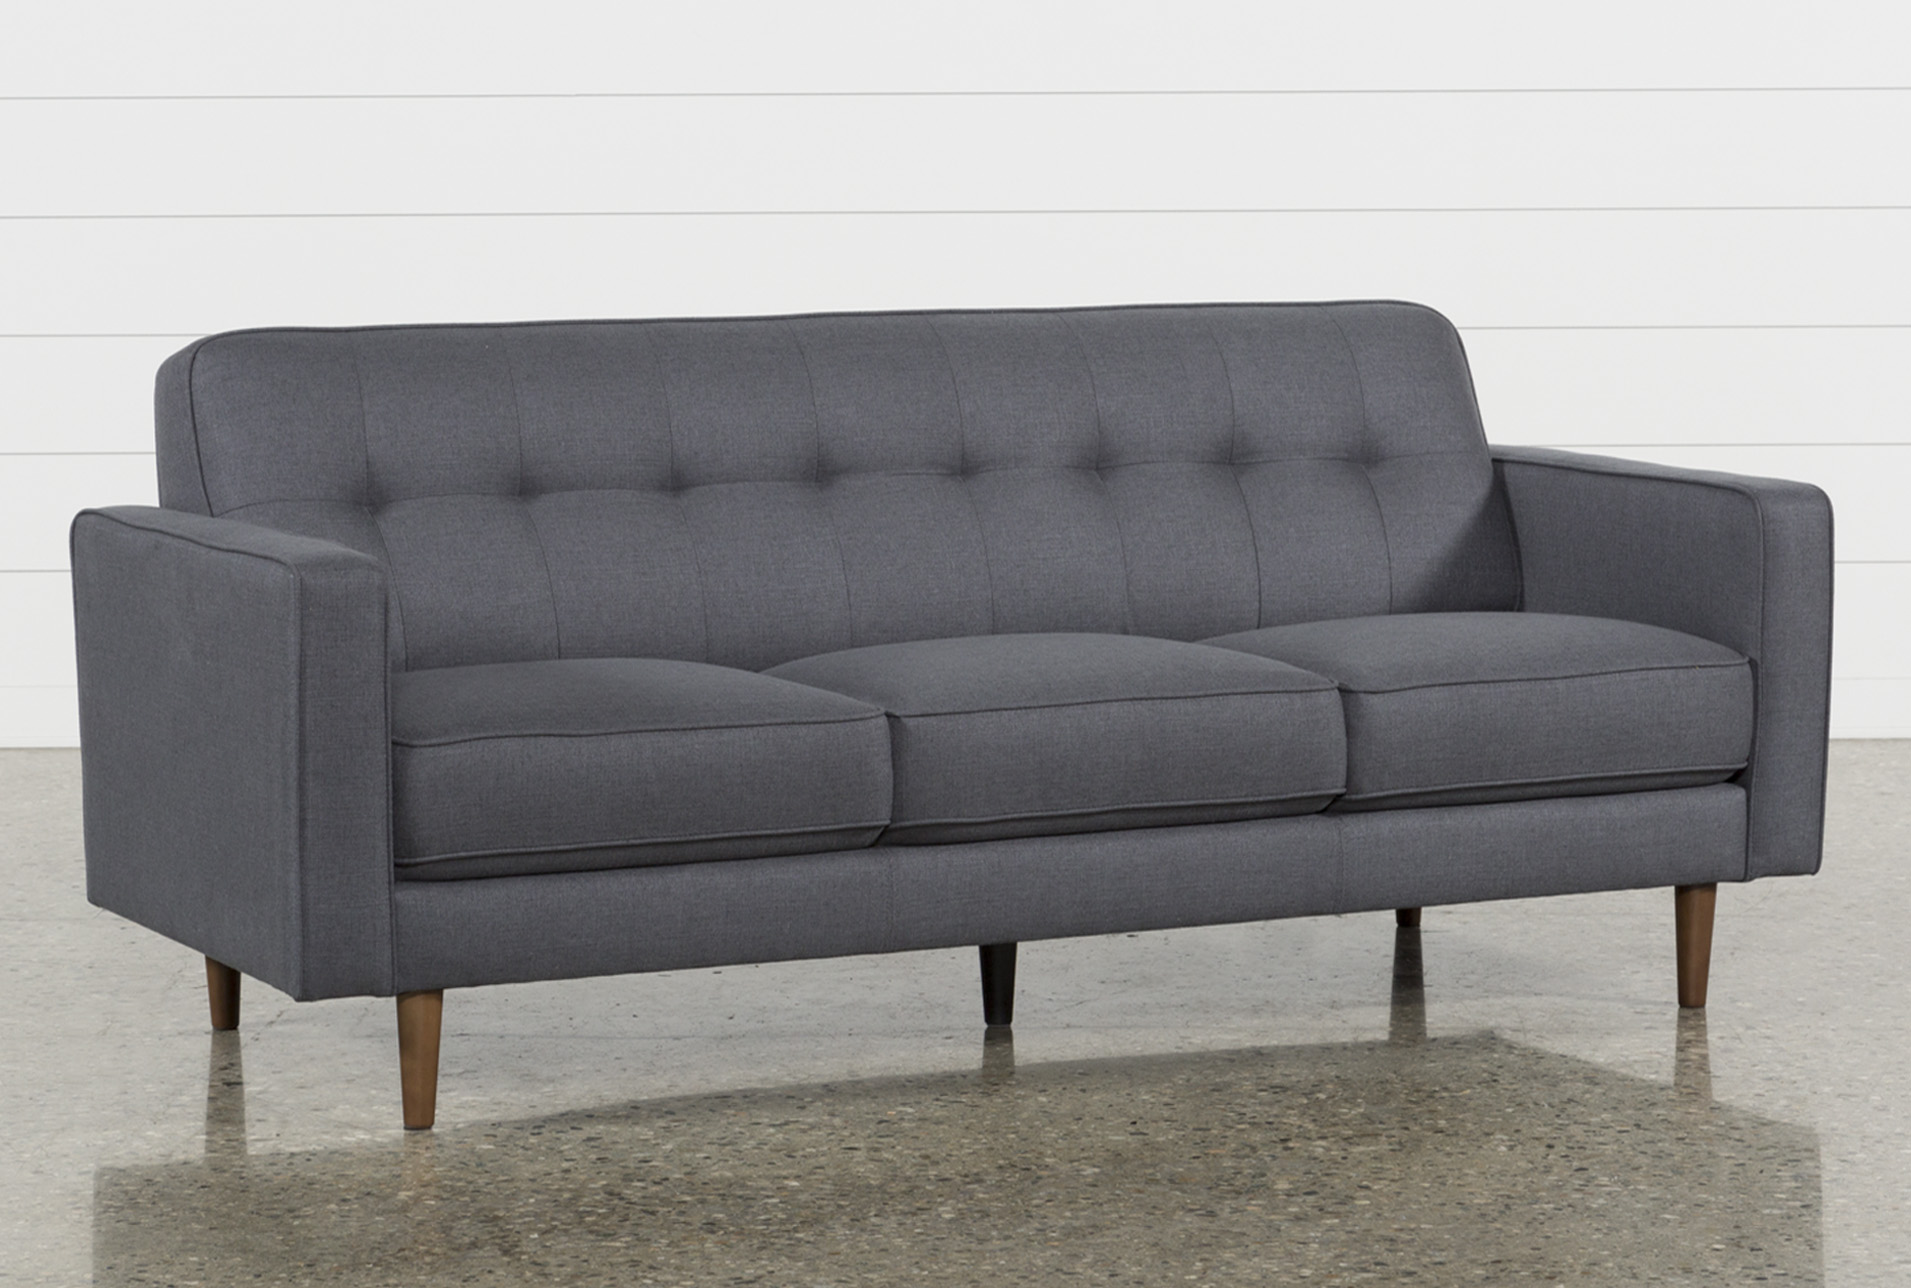 London Dark Grey Sofa (Qty: 1) has been successfully added to your Cart.